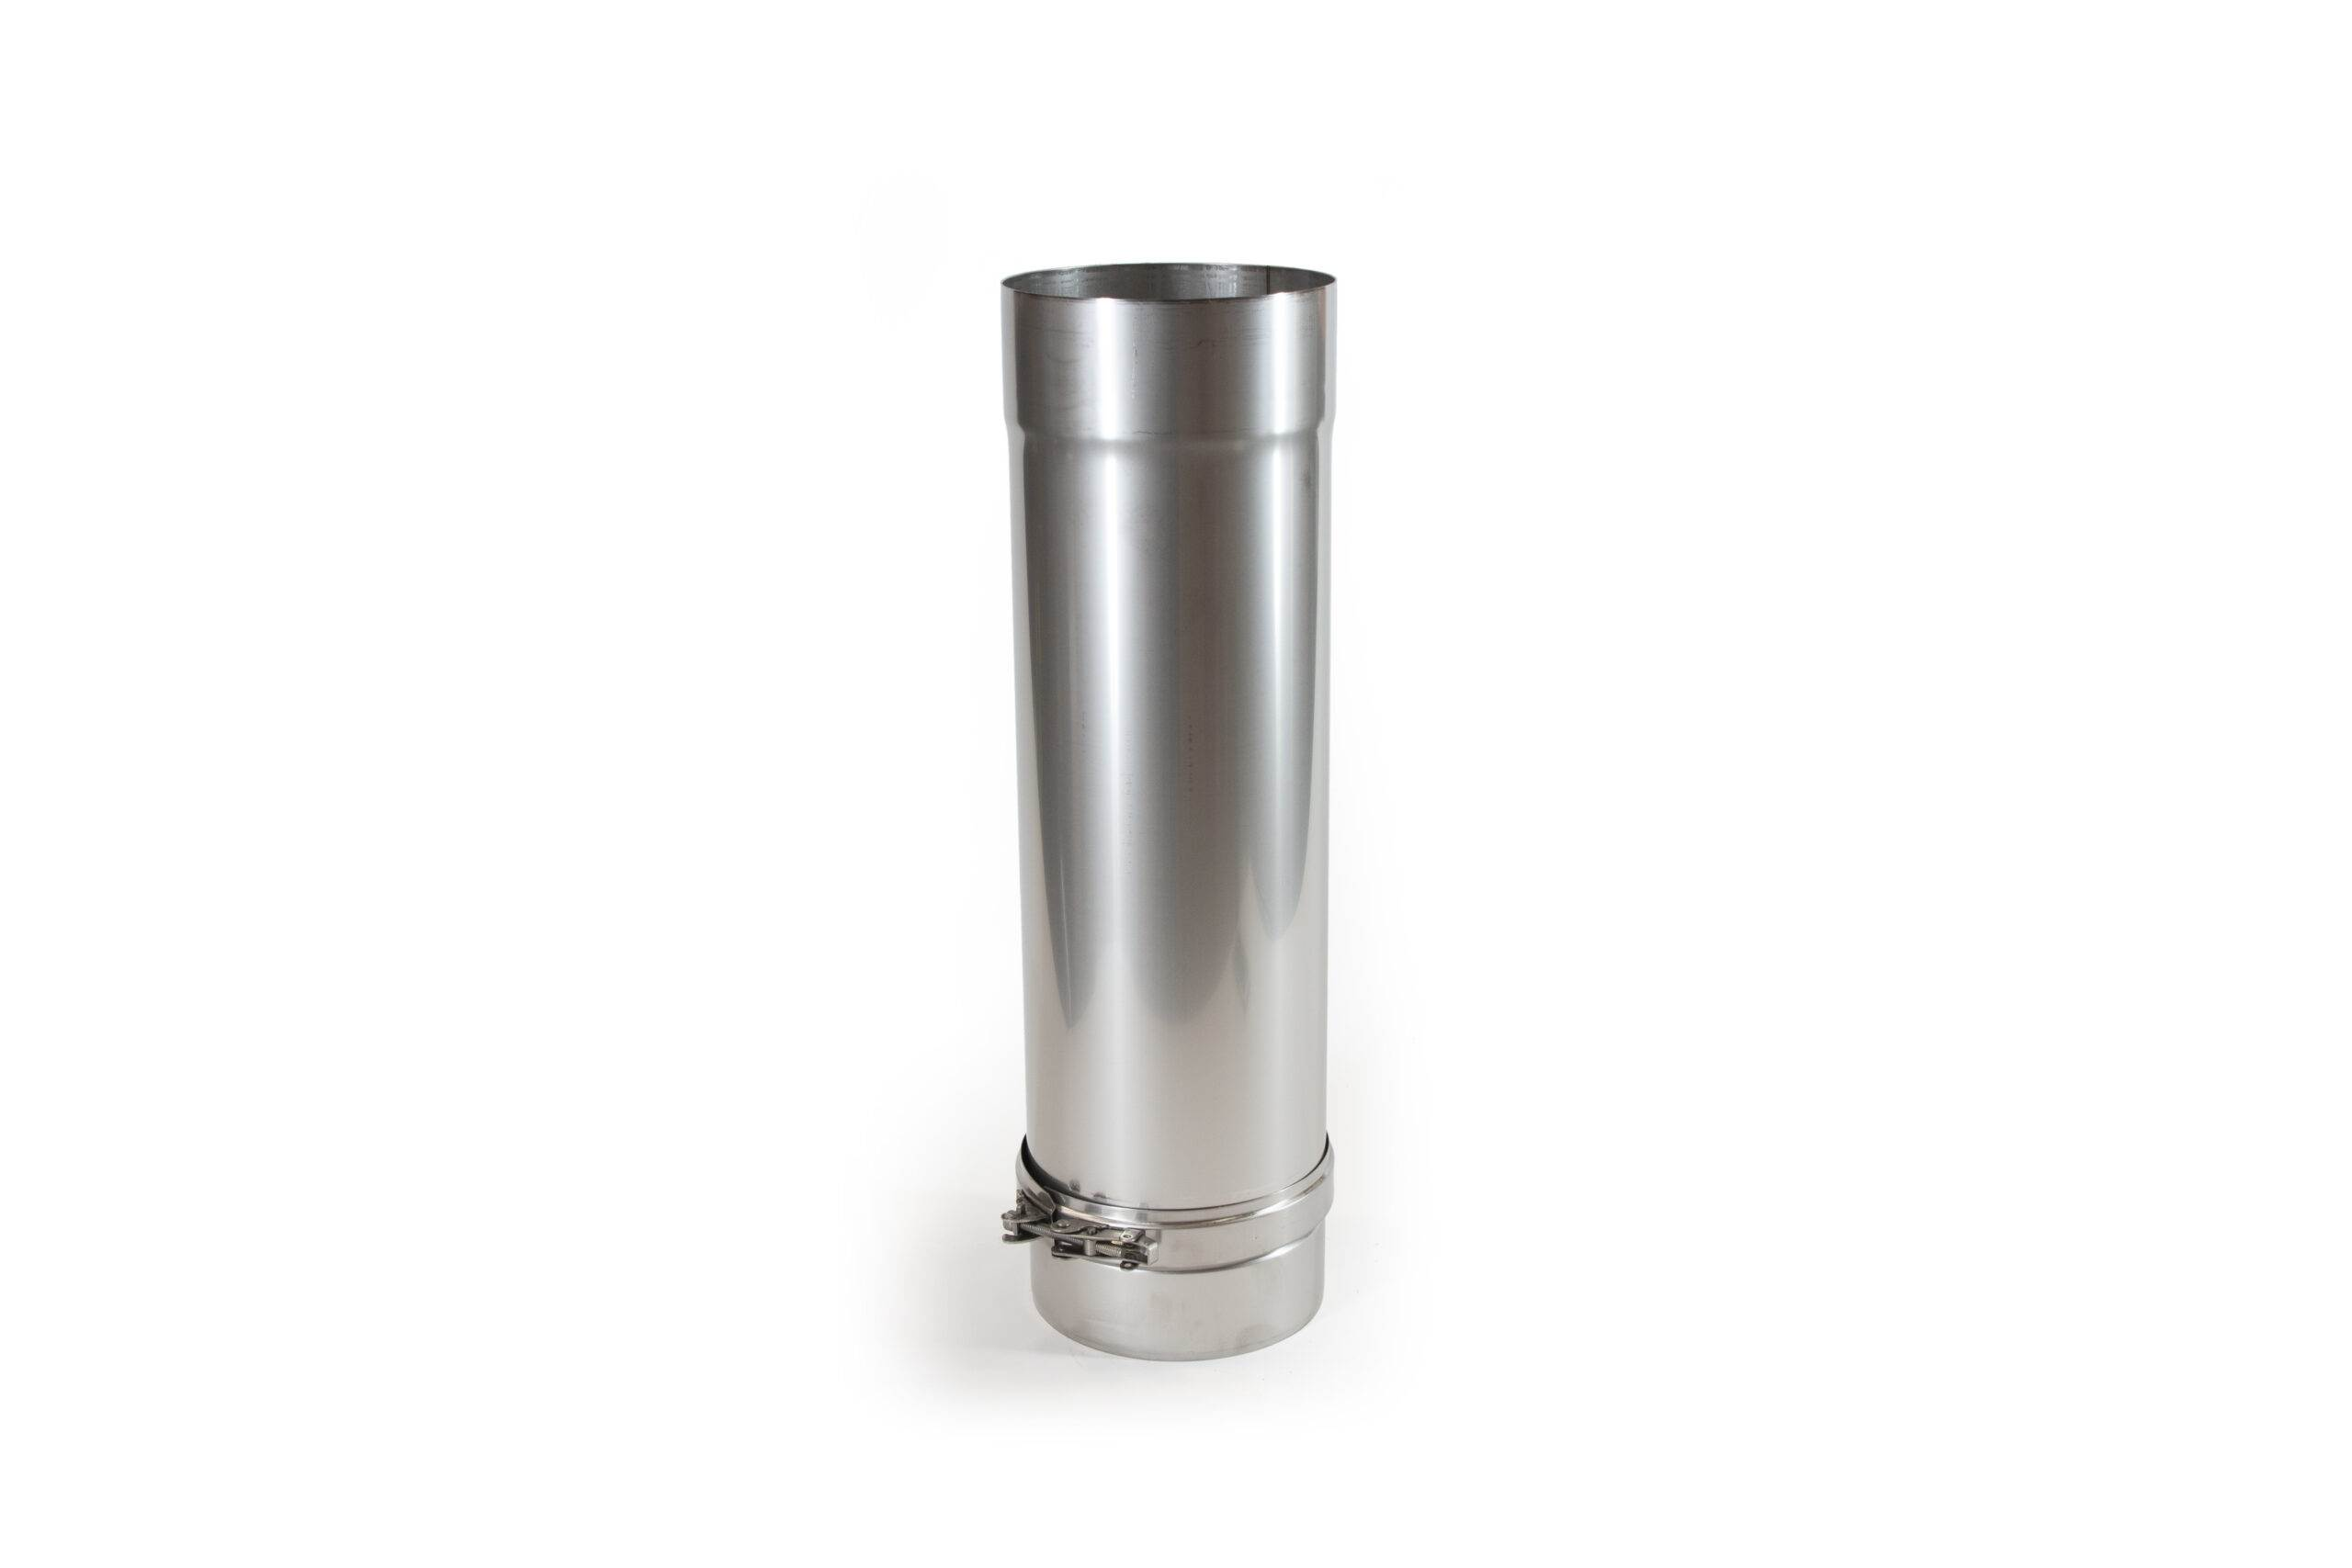 80mm-400mm Adjustable Length Stainless Steel Flue Pipe